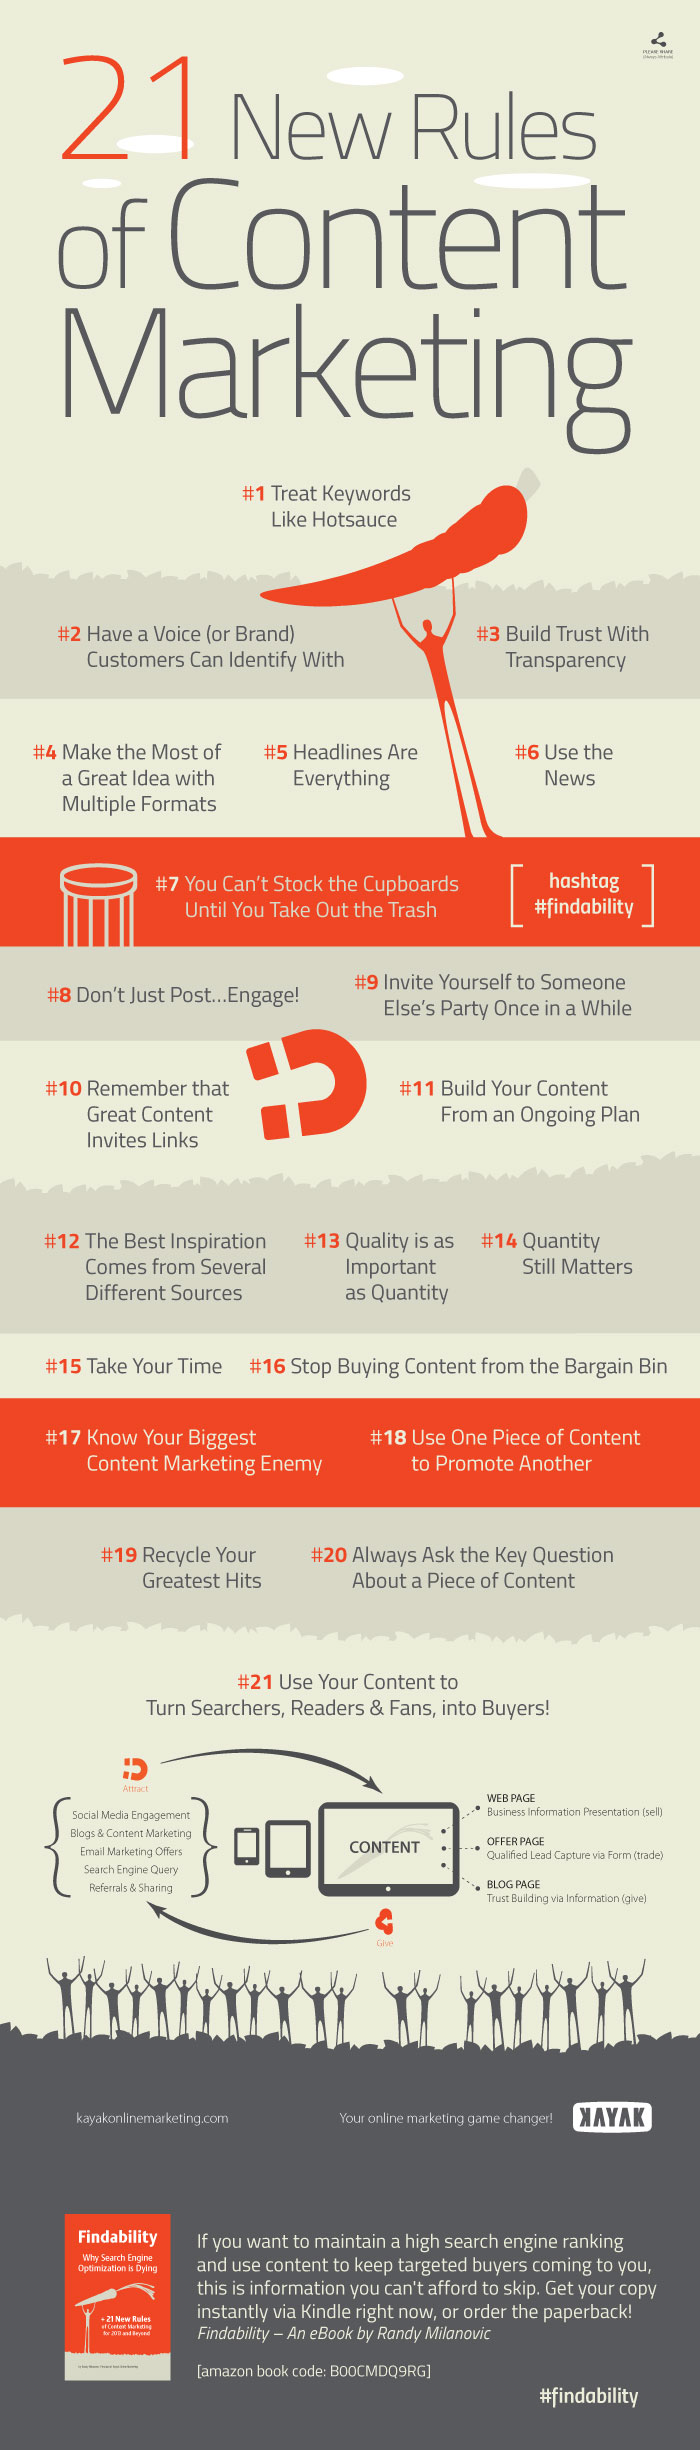 Vivid Content Marketing Infographic 21 New Rules.jpg